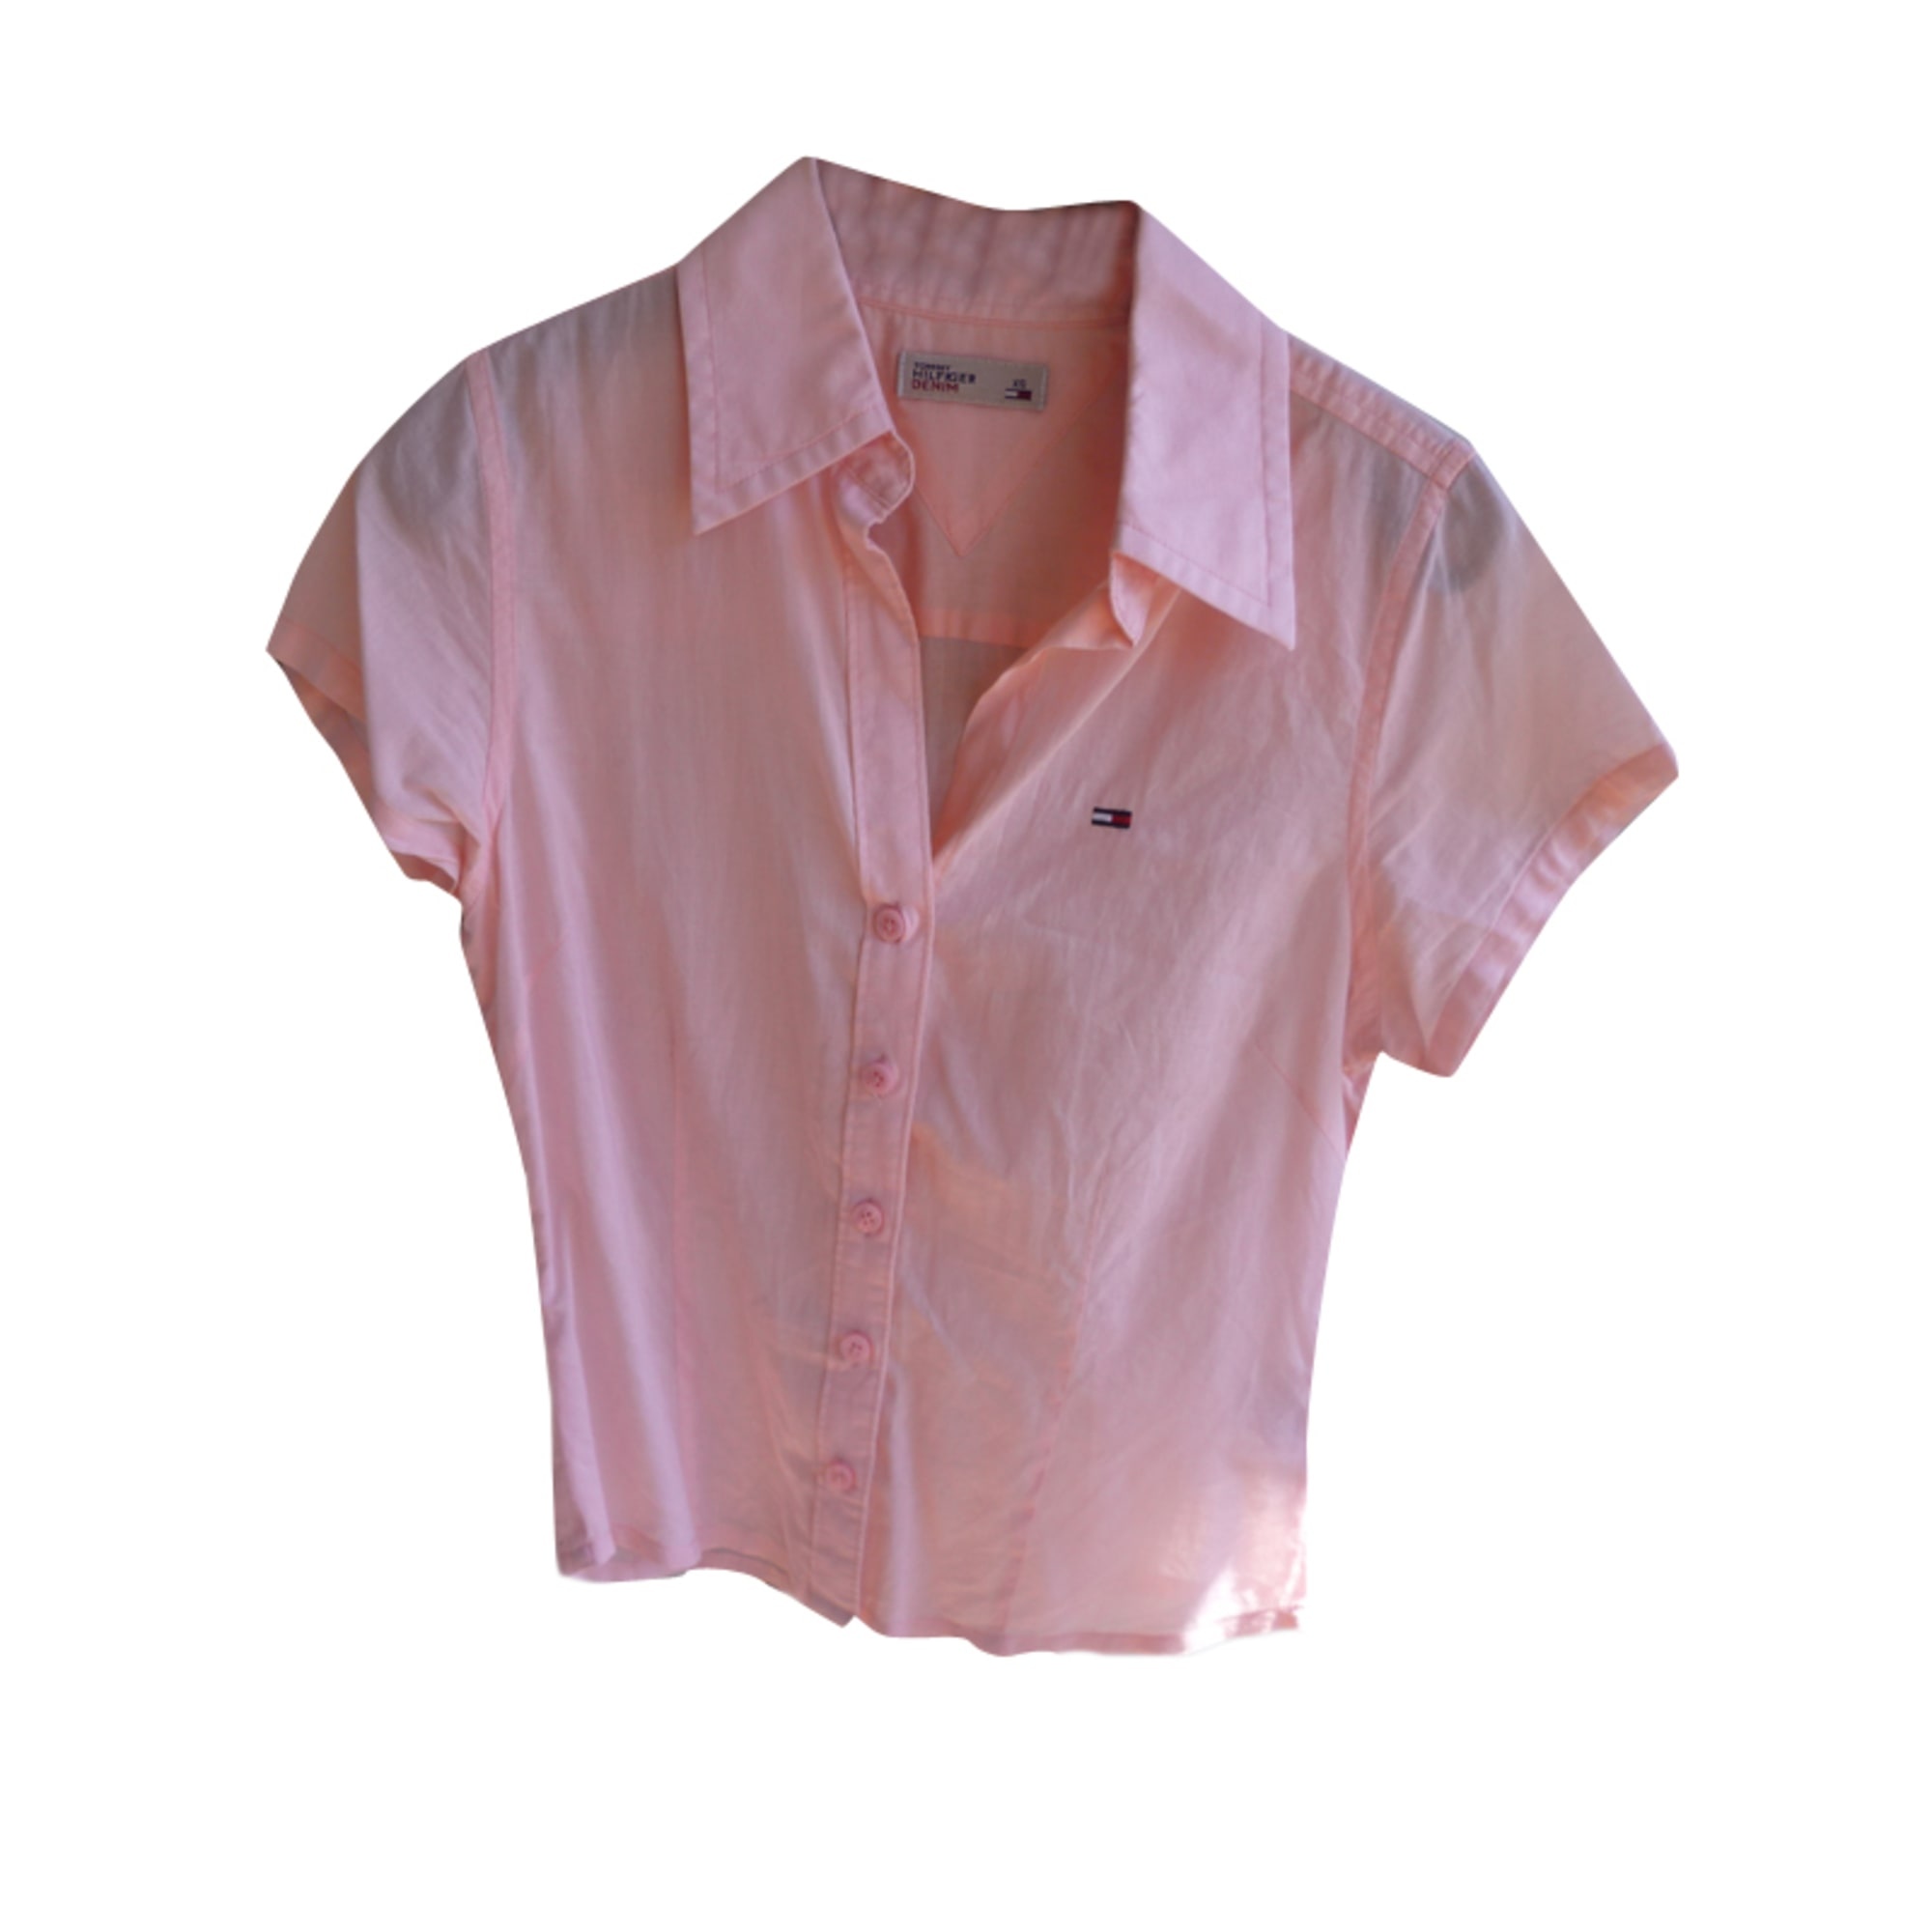 Chemise TOMMY HILFIGER Rose, fuschia, vieux rose